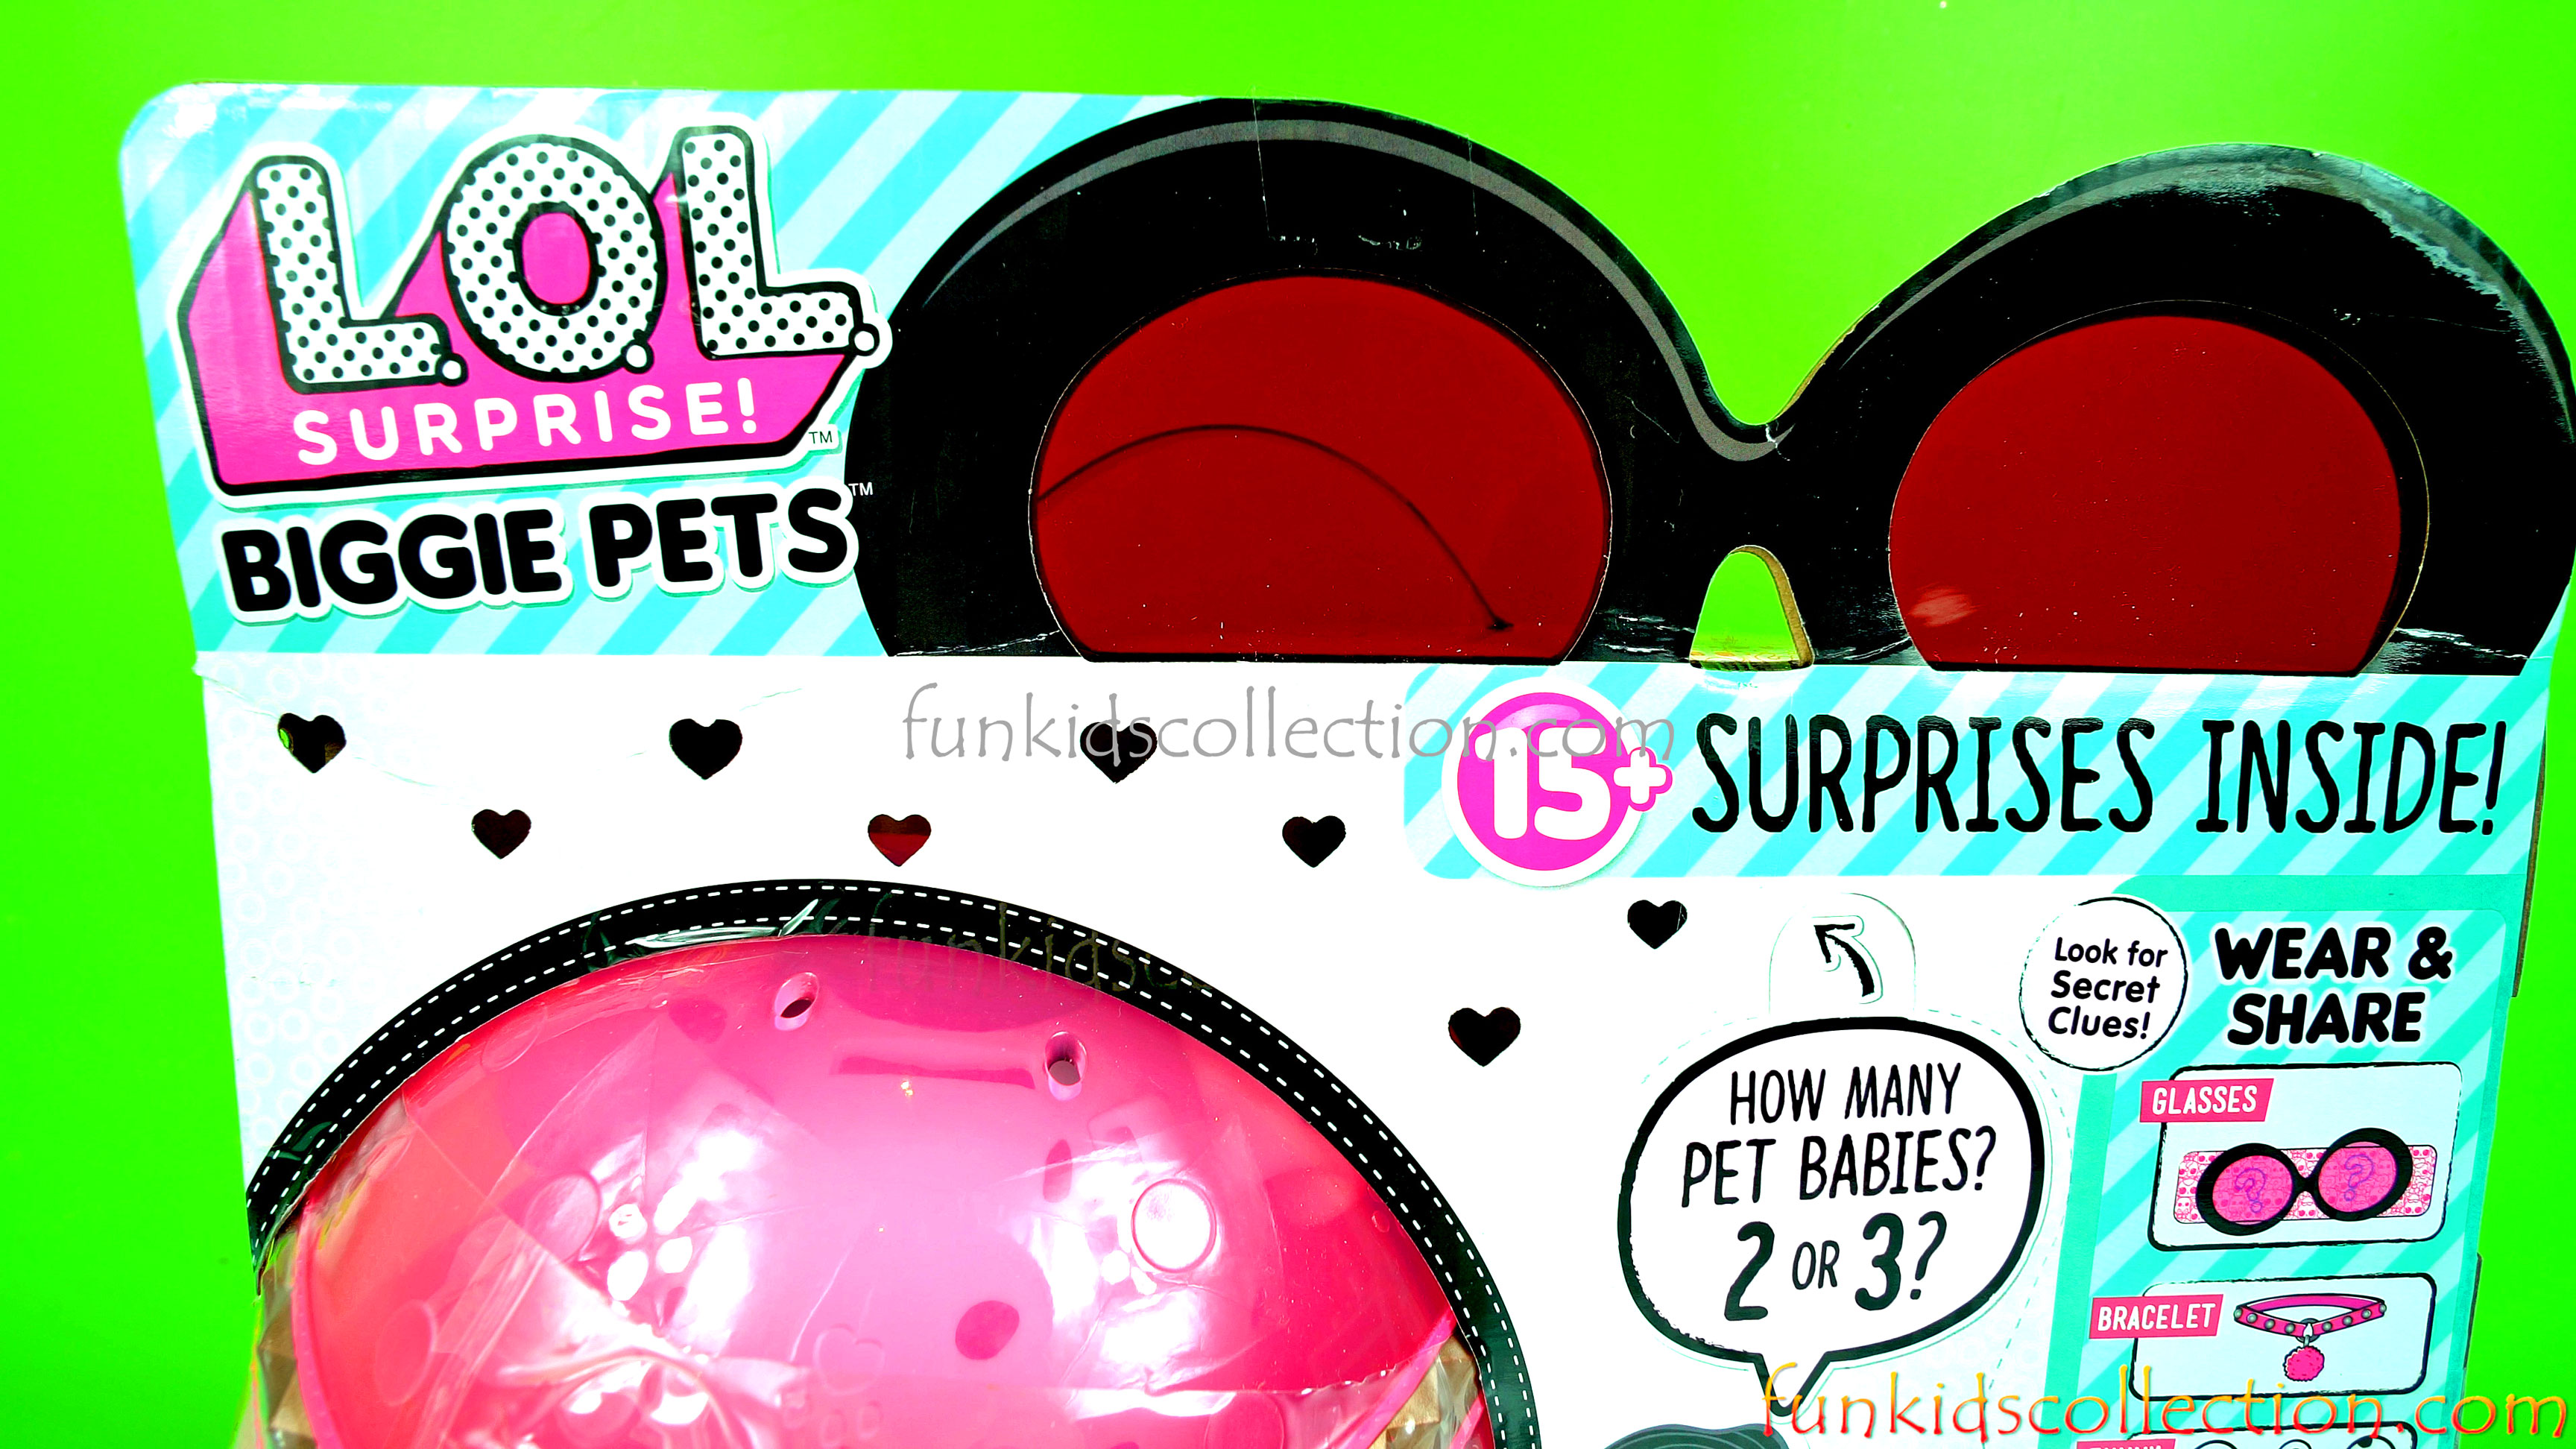 Lol Biggie Pets with 15 Surprises